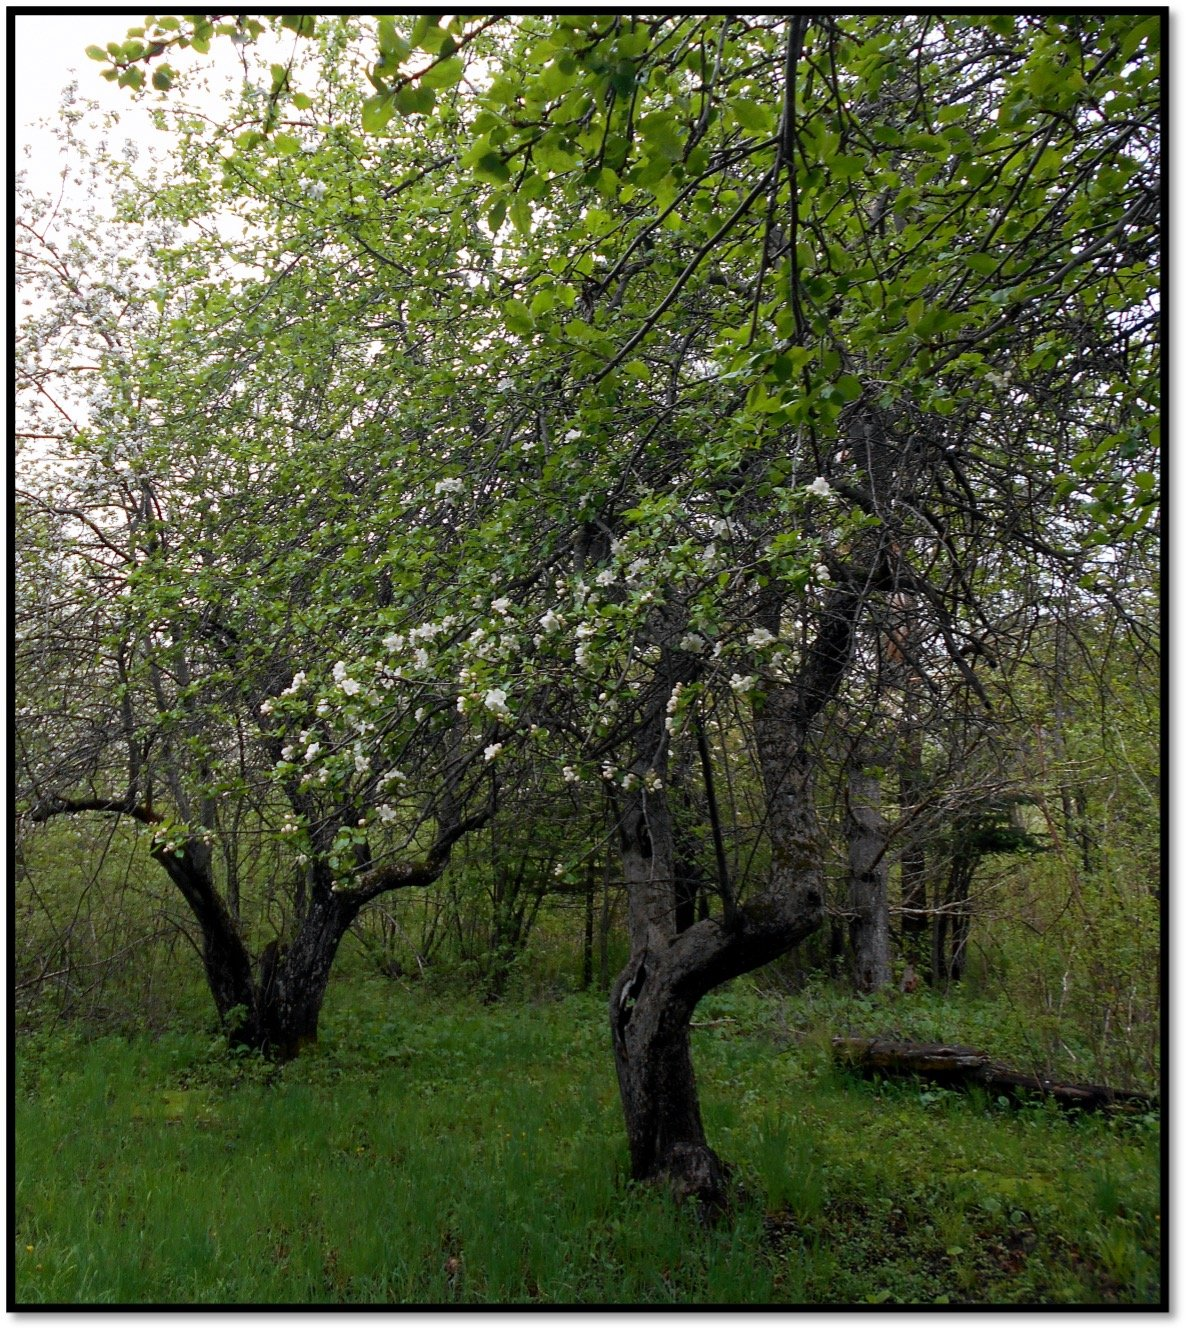 Duchess of Oldenburg apple trees May 25 2015 Established 1906-1910 Section 21 33695 Milligan Road Salmo WI